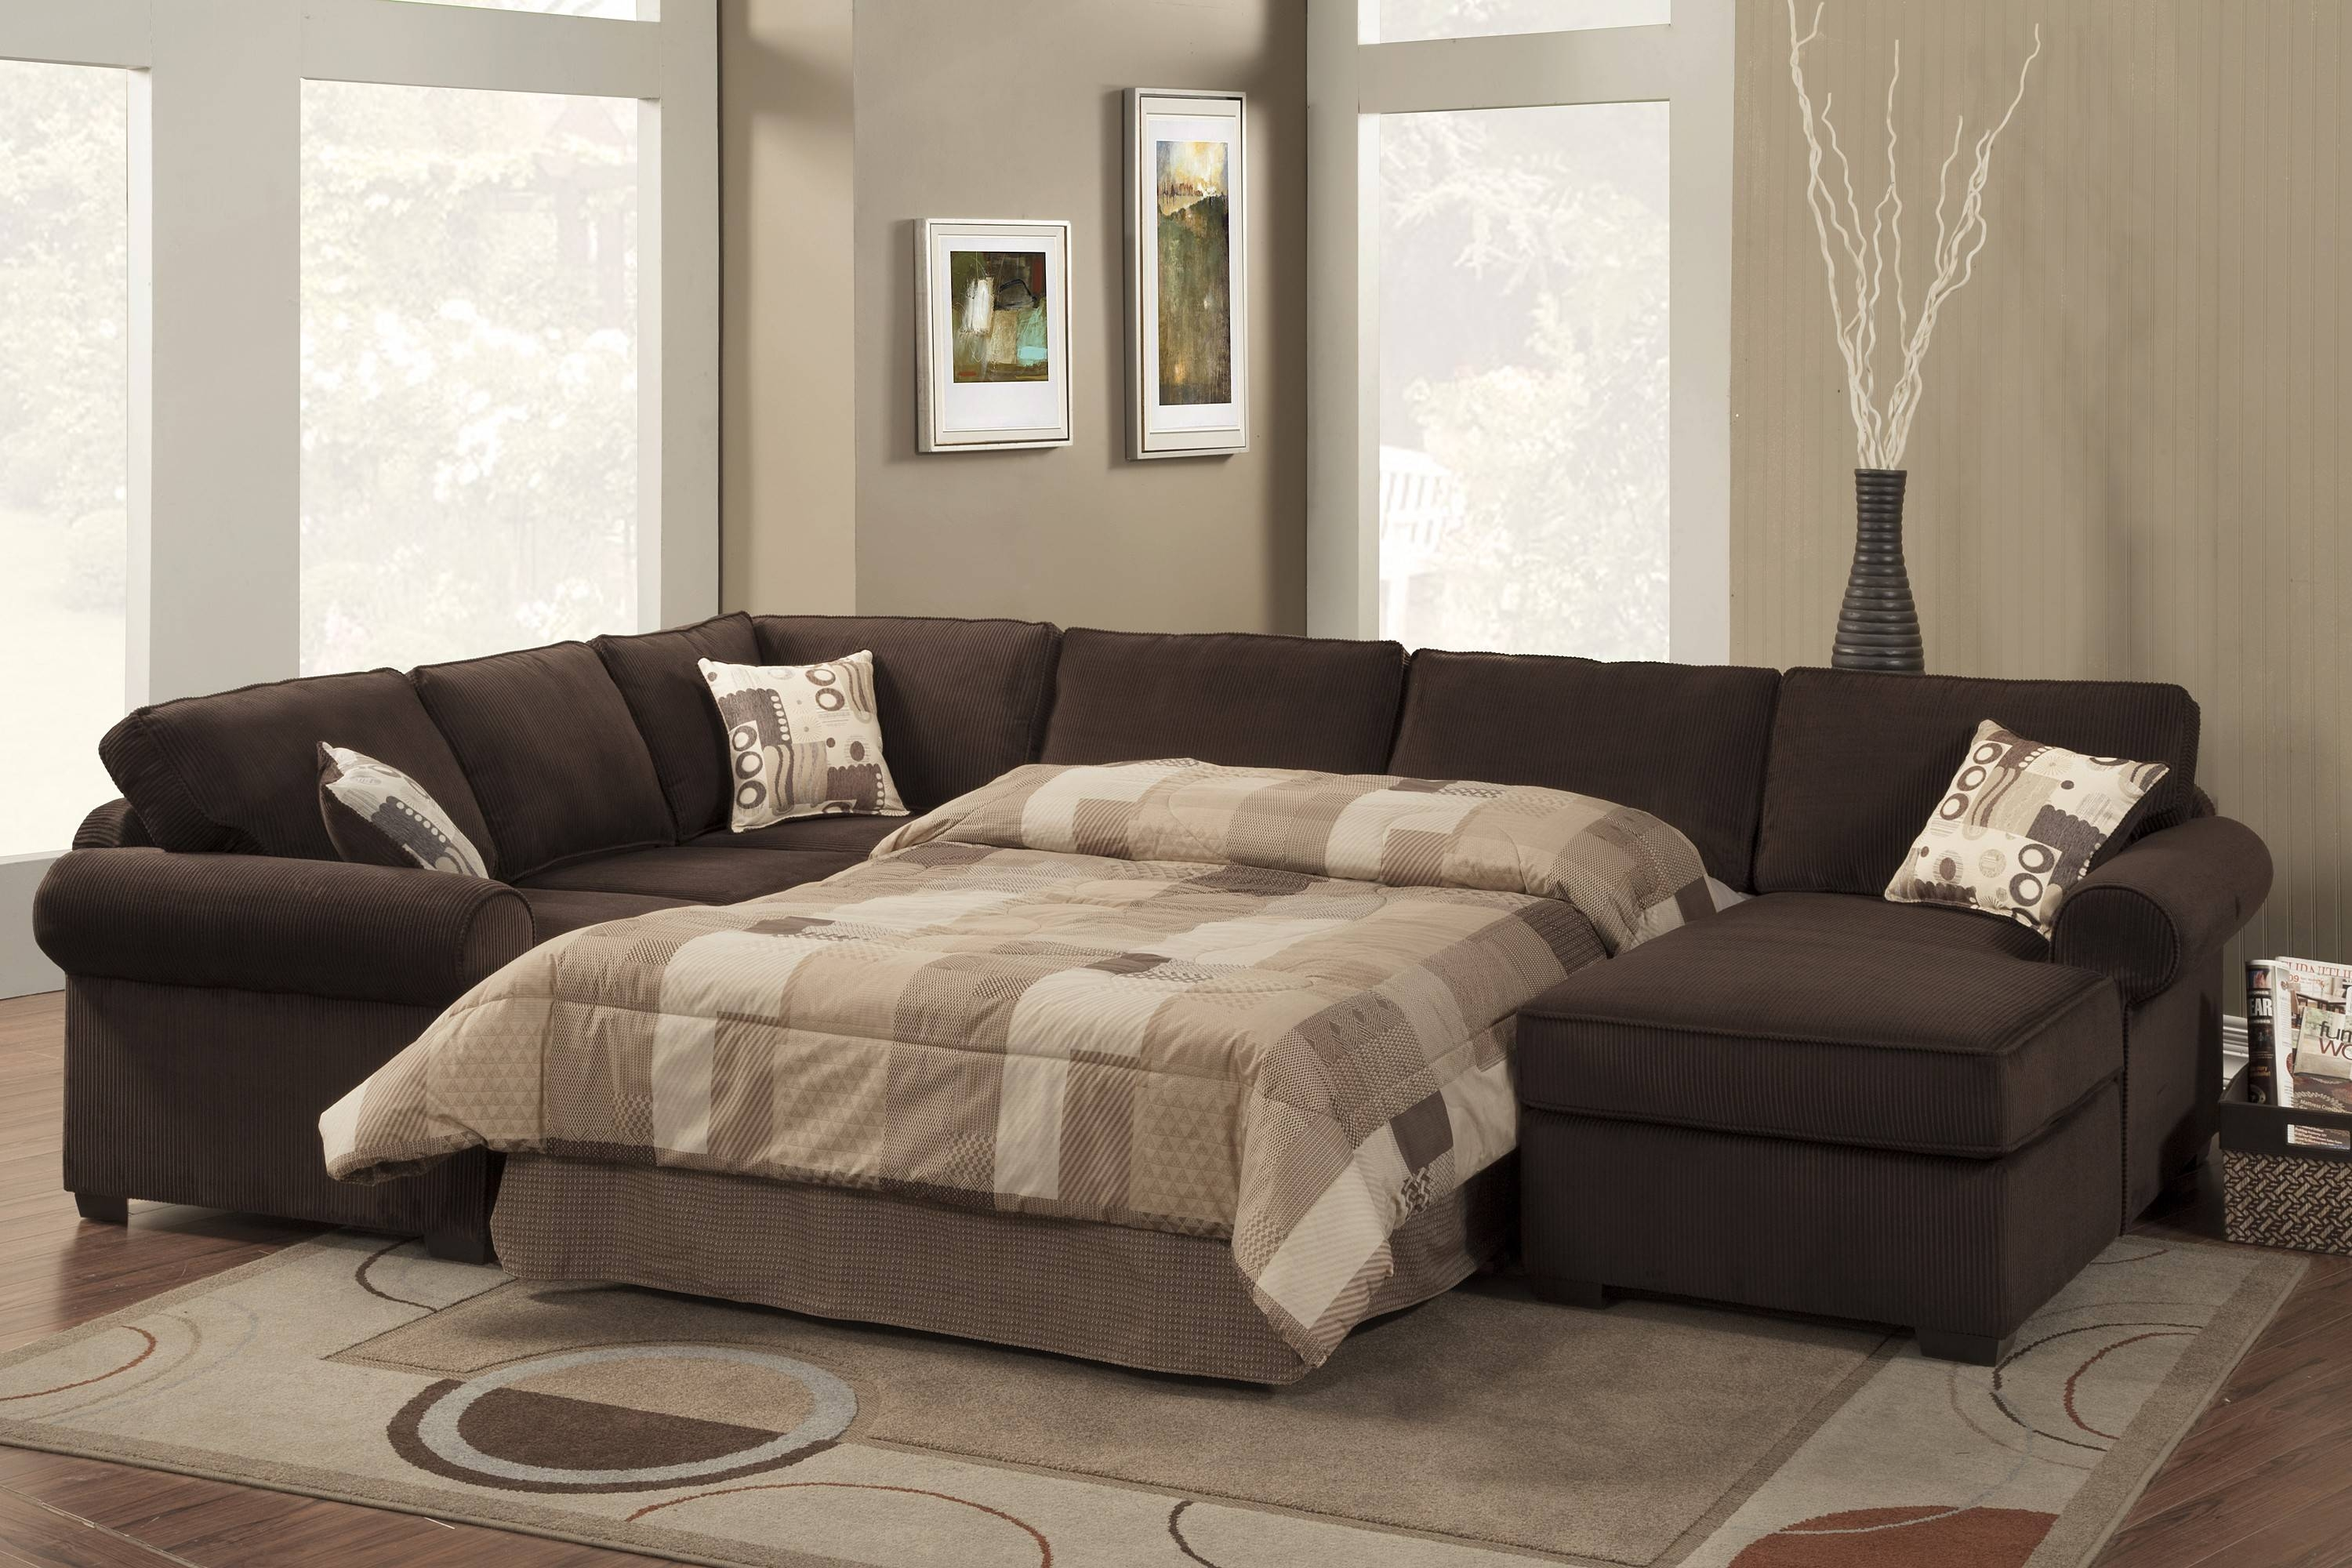 Sectional Sofa Sleepers For Better Sleep Quality And Comfort Pertaining To Soft Sectional Sofas (View 22 of 30)